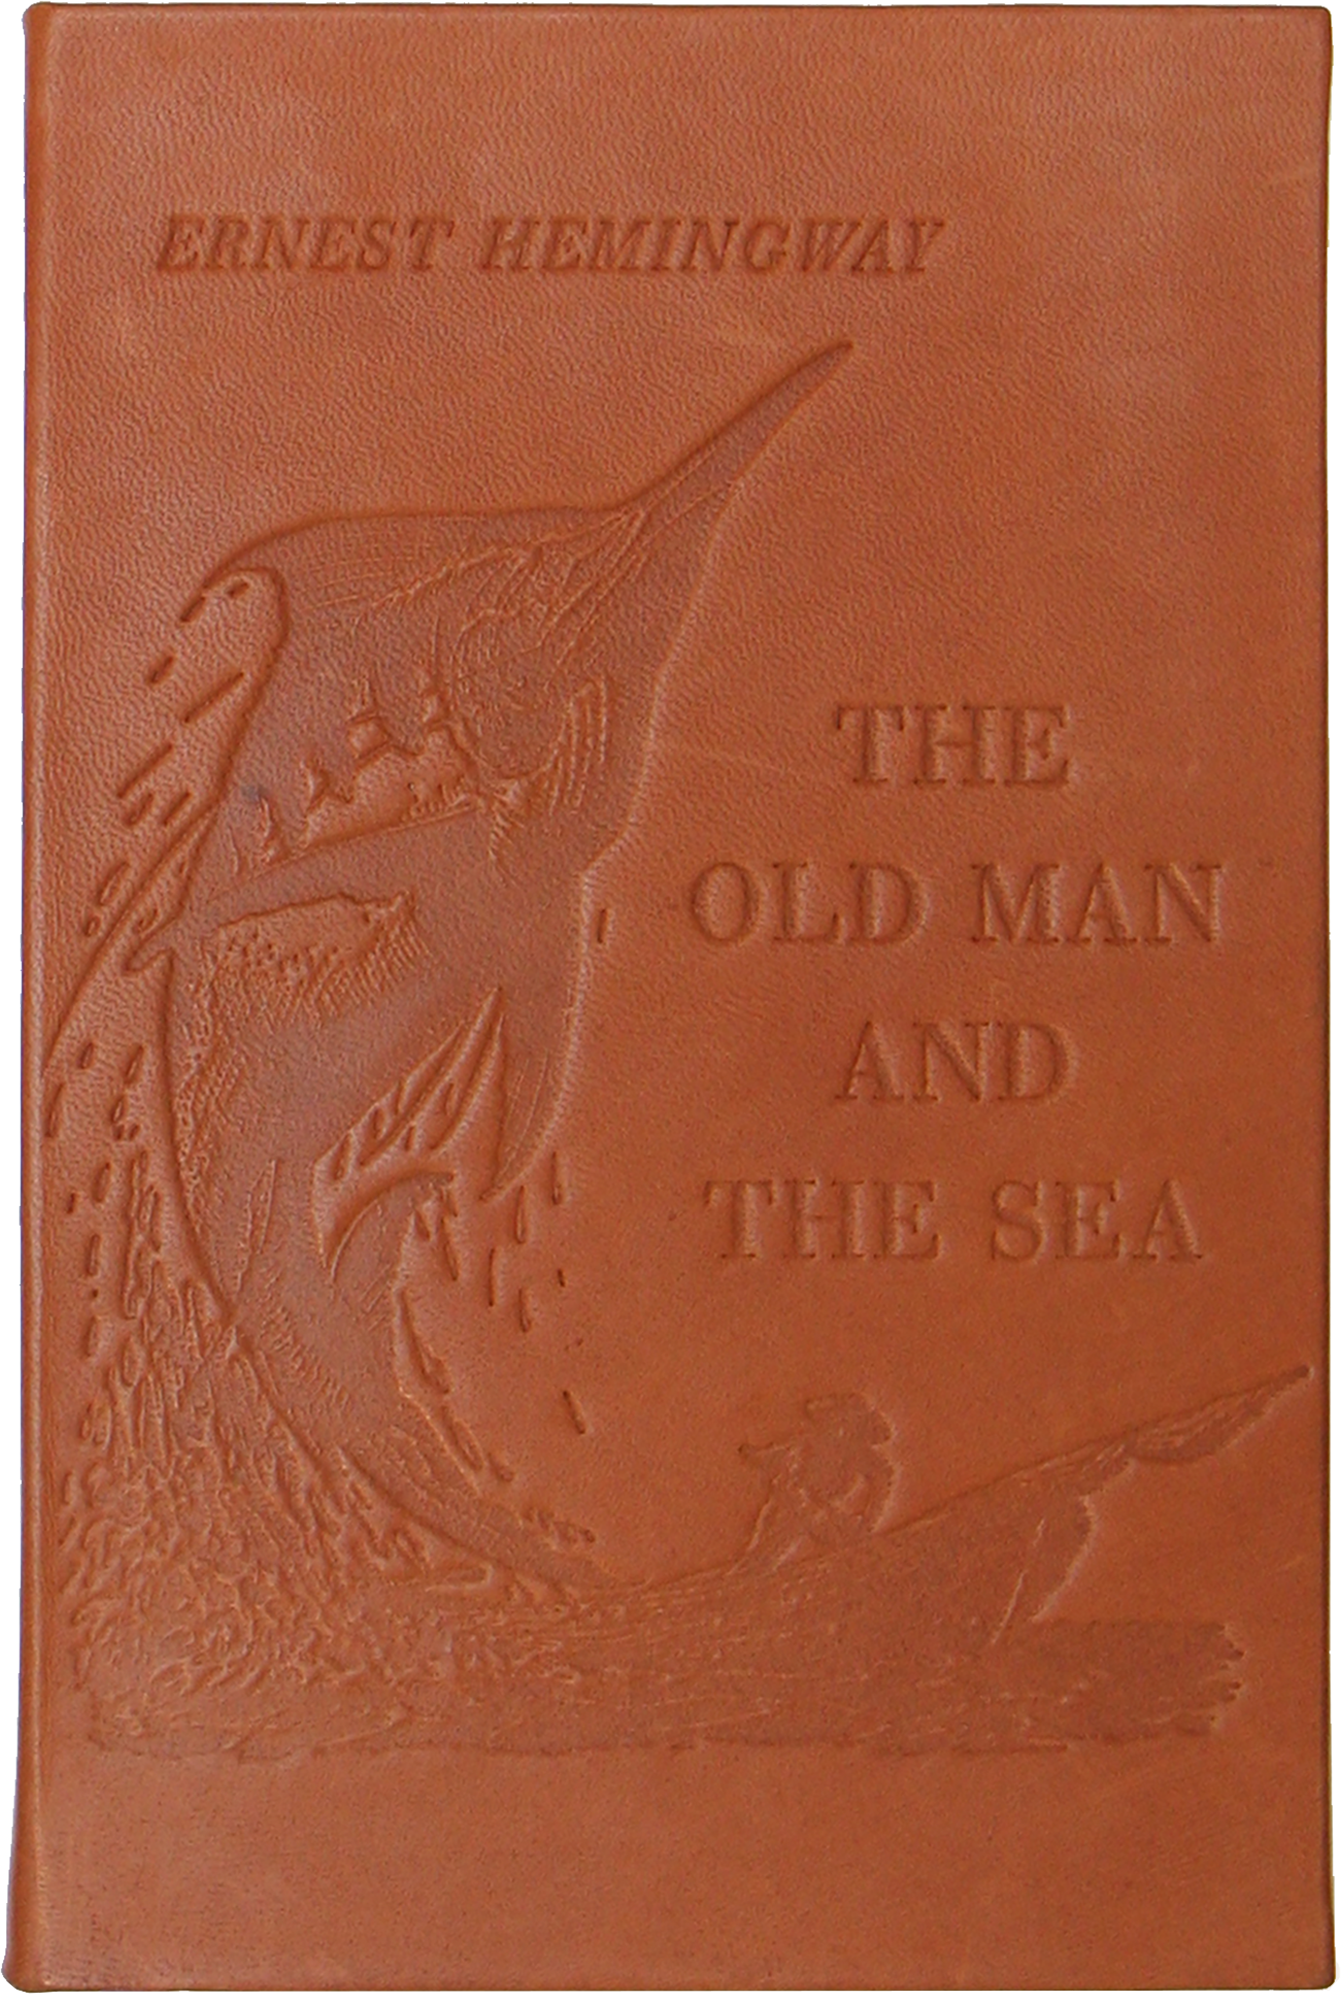 2. The Old Man and the Sea